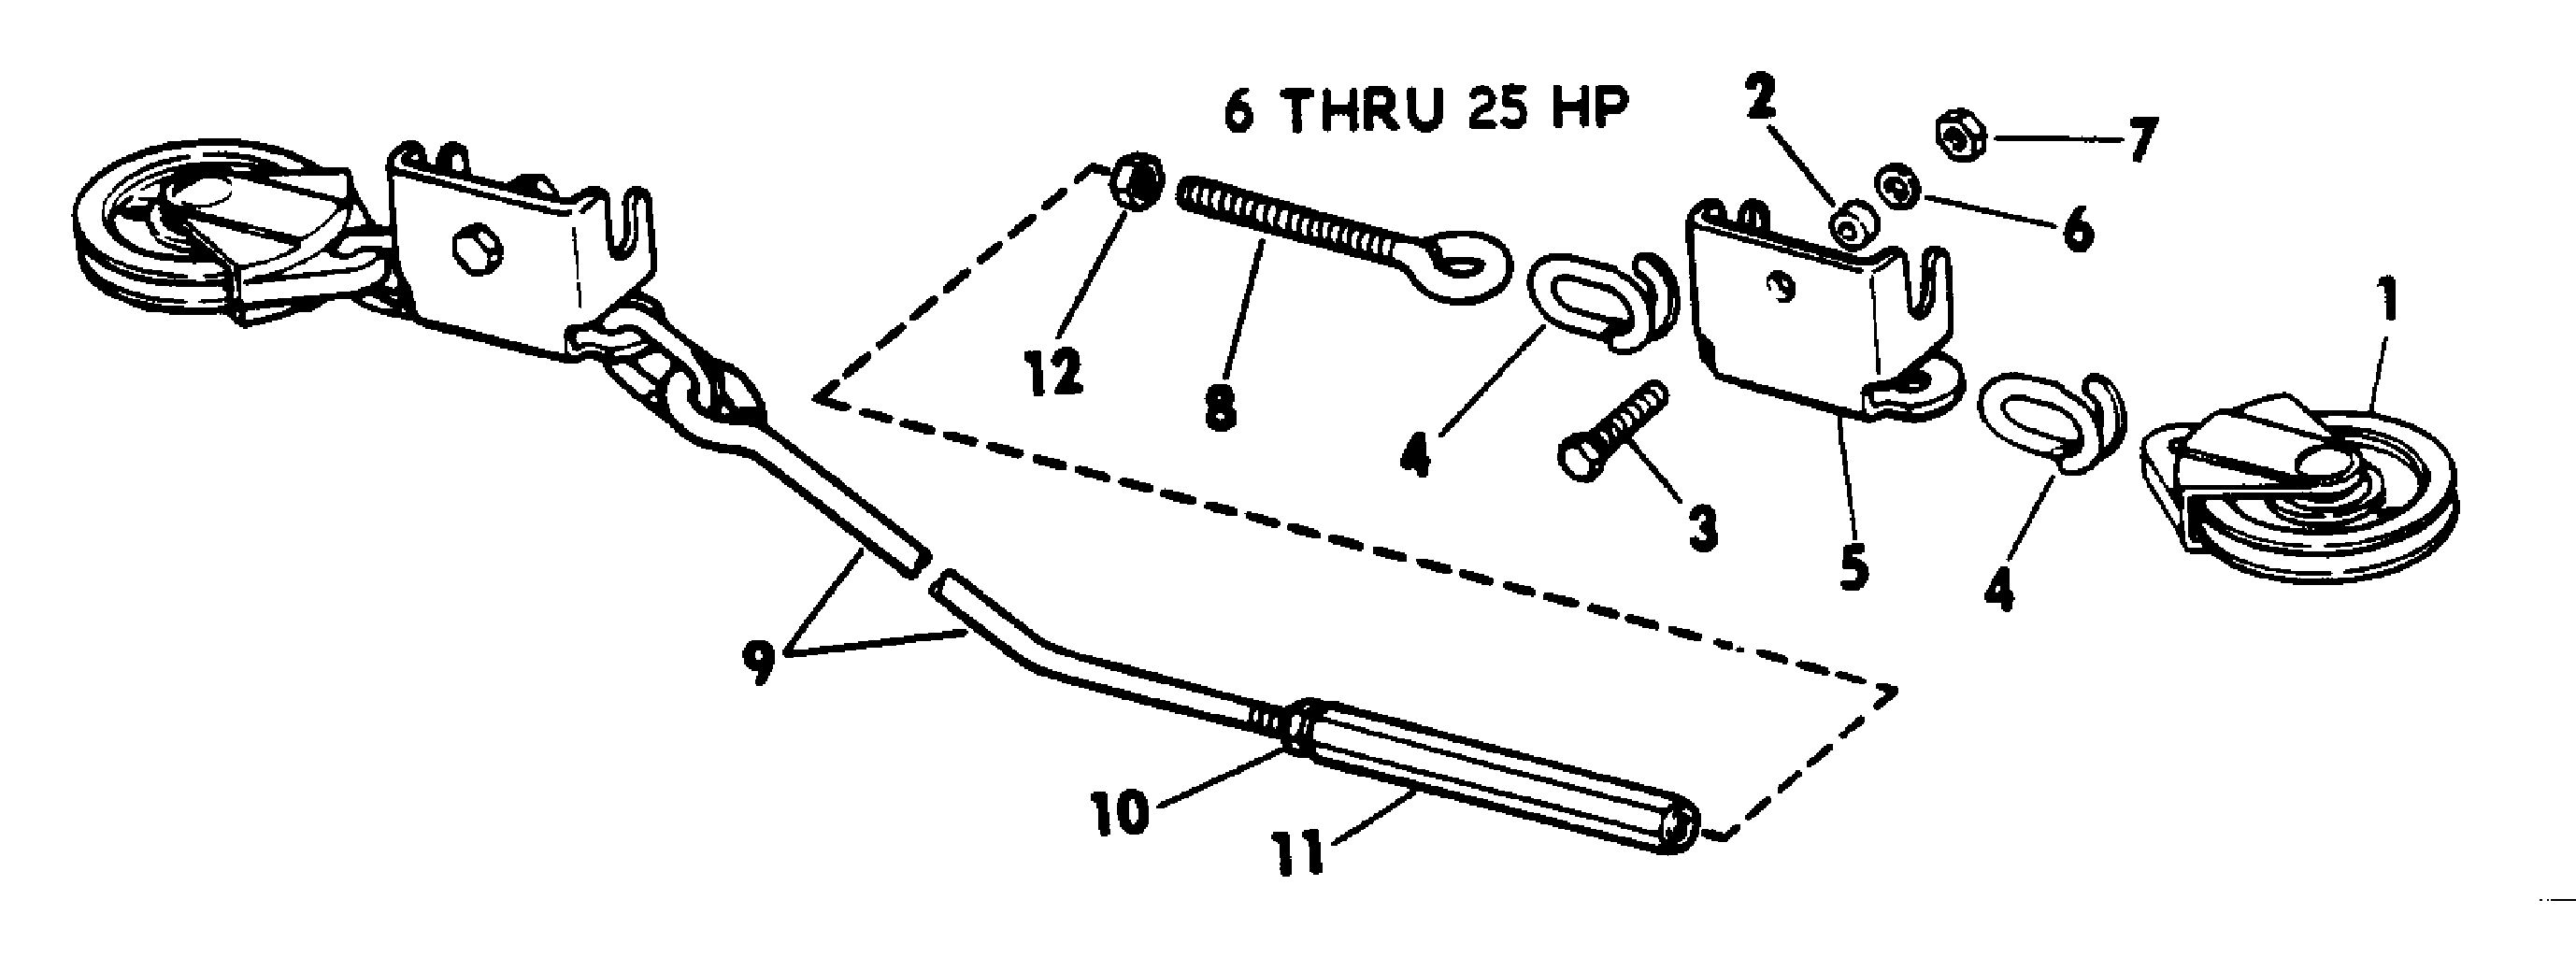 remote ctrl Steering 1972 Accessories for 1972 Johnson